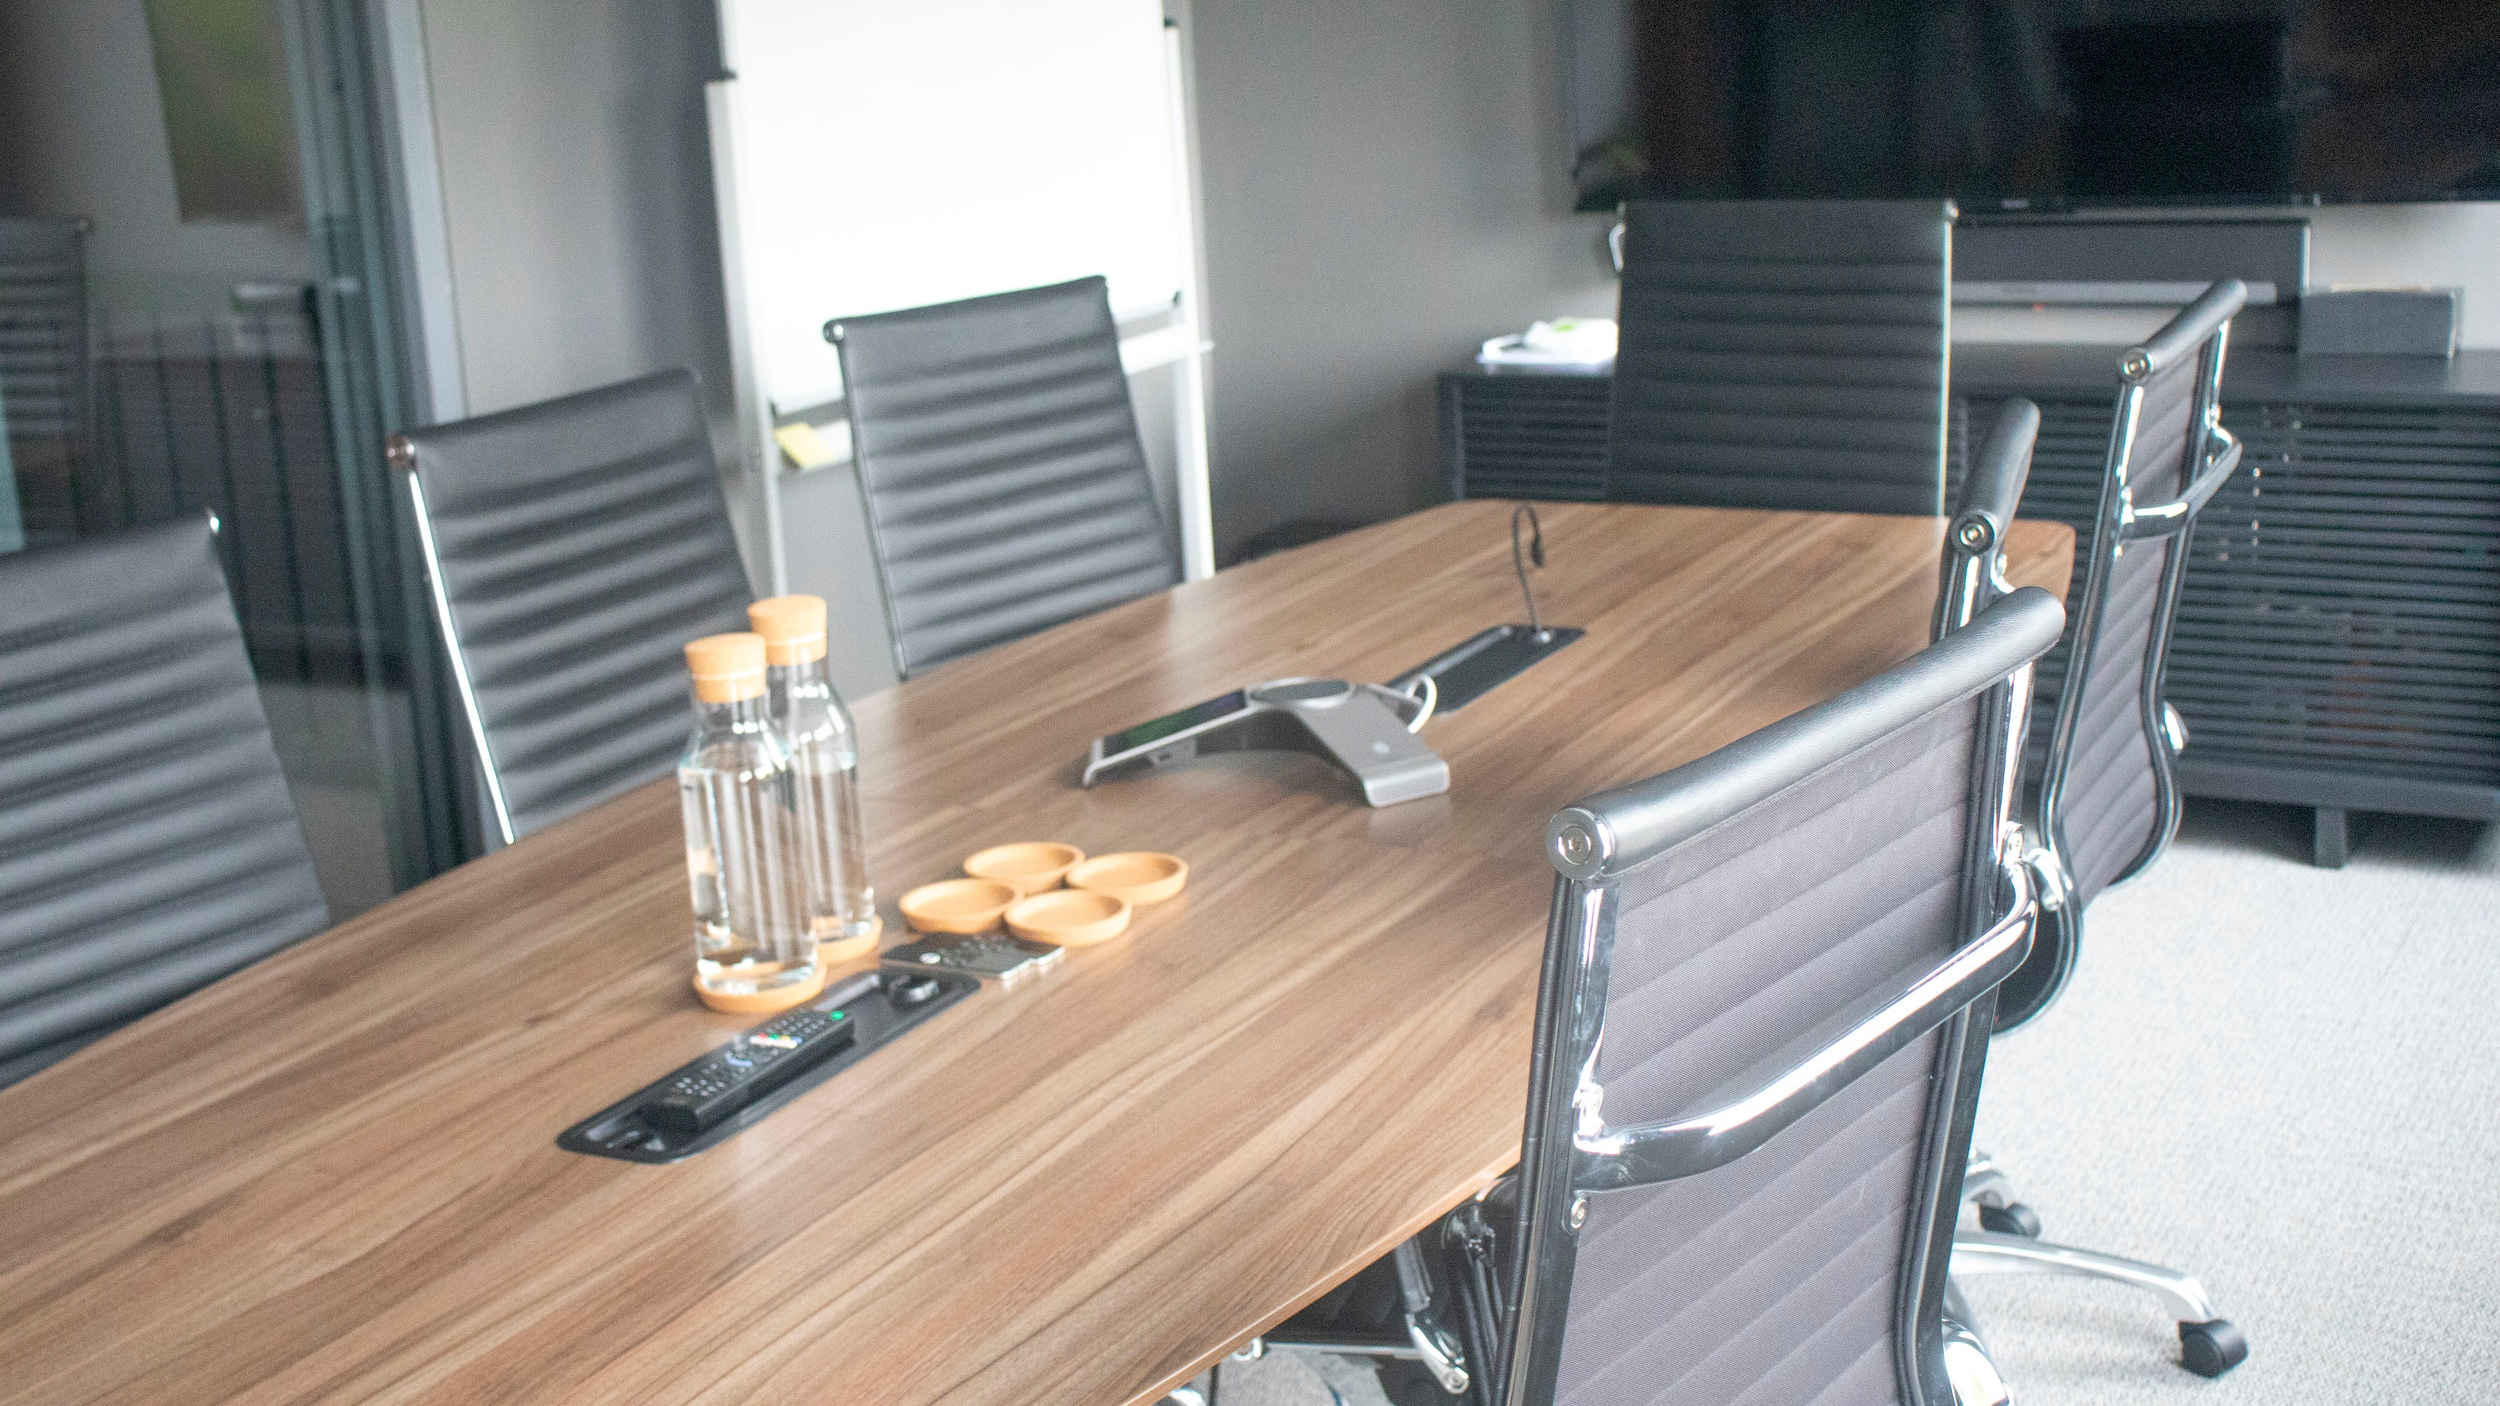 Boardroom - Full access to room and all amenities while the room is booked. Access to help desk and support staff to assist with AV and connectivity.Tea and Coffee with basic snacks servedAccess to bathrooms and kitchen areaLearn More →